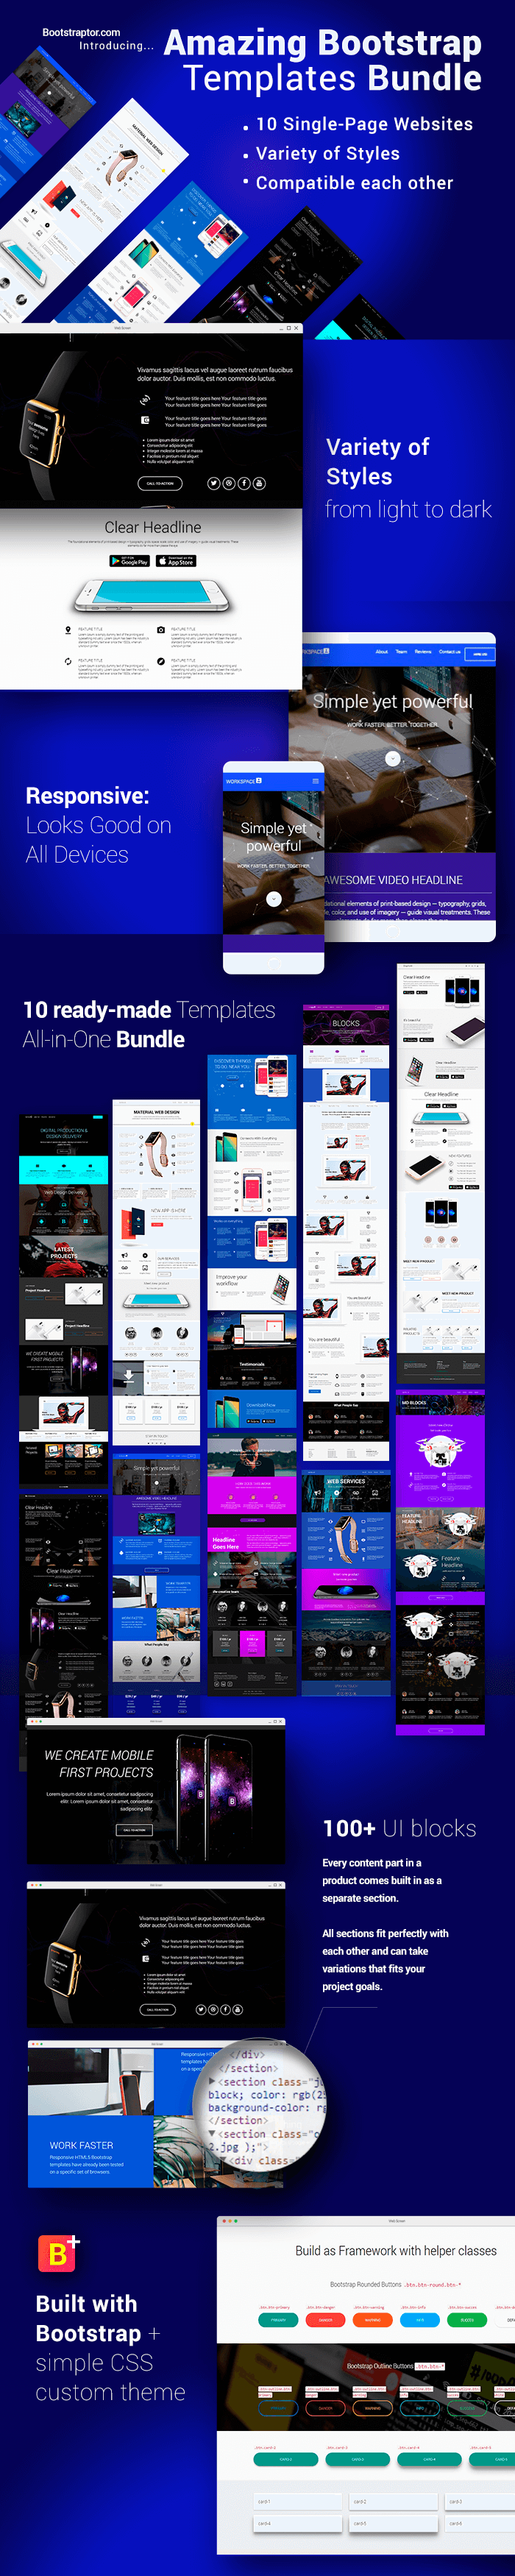 LAST CHANCE: The Essential Bootstrap Bundle with 130